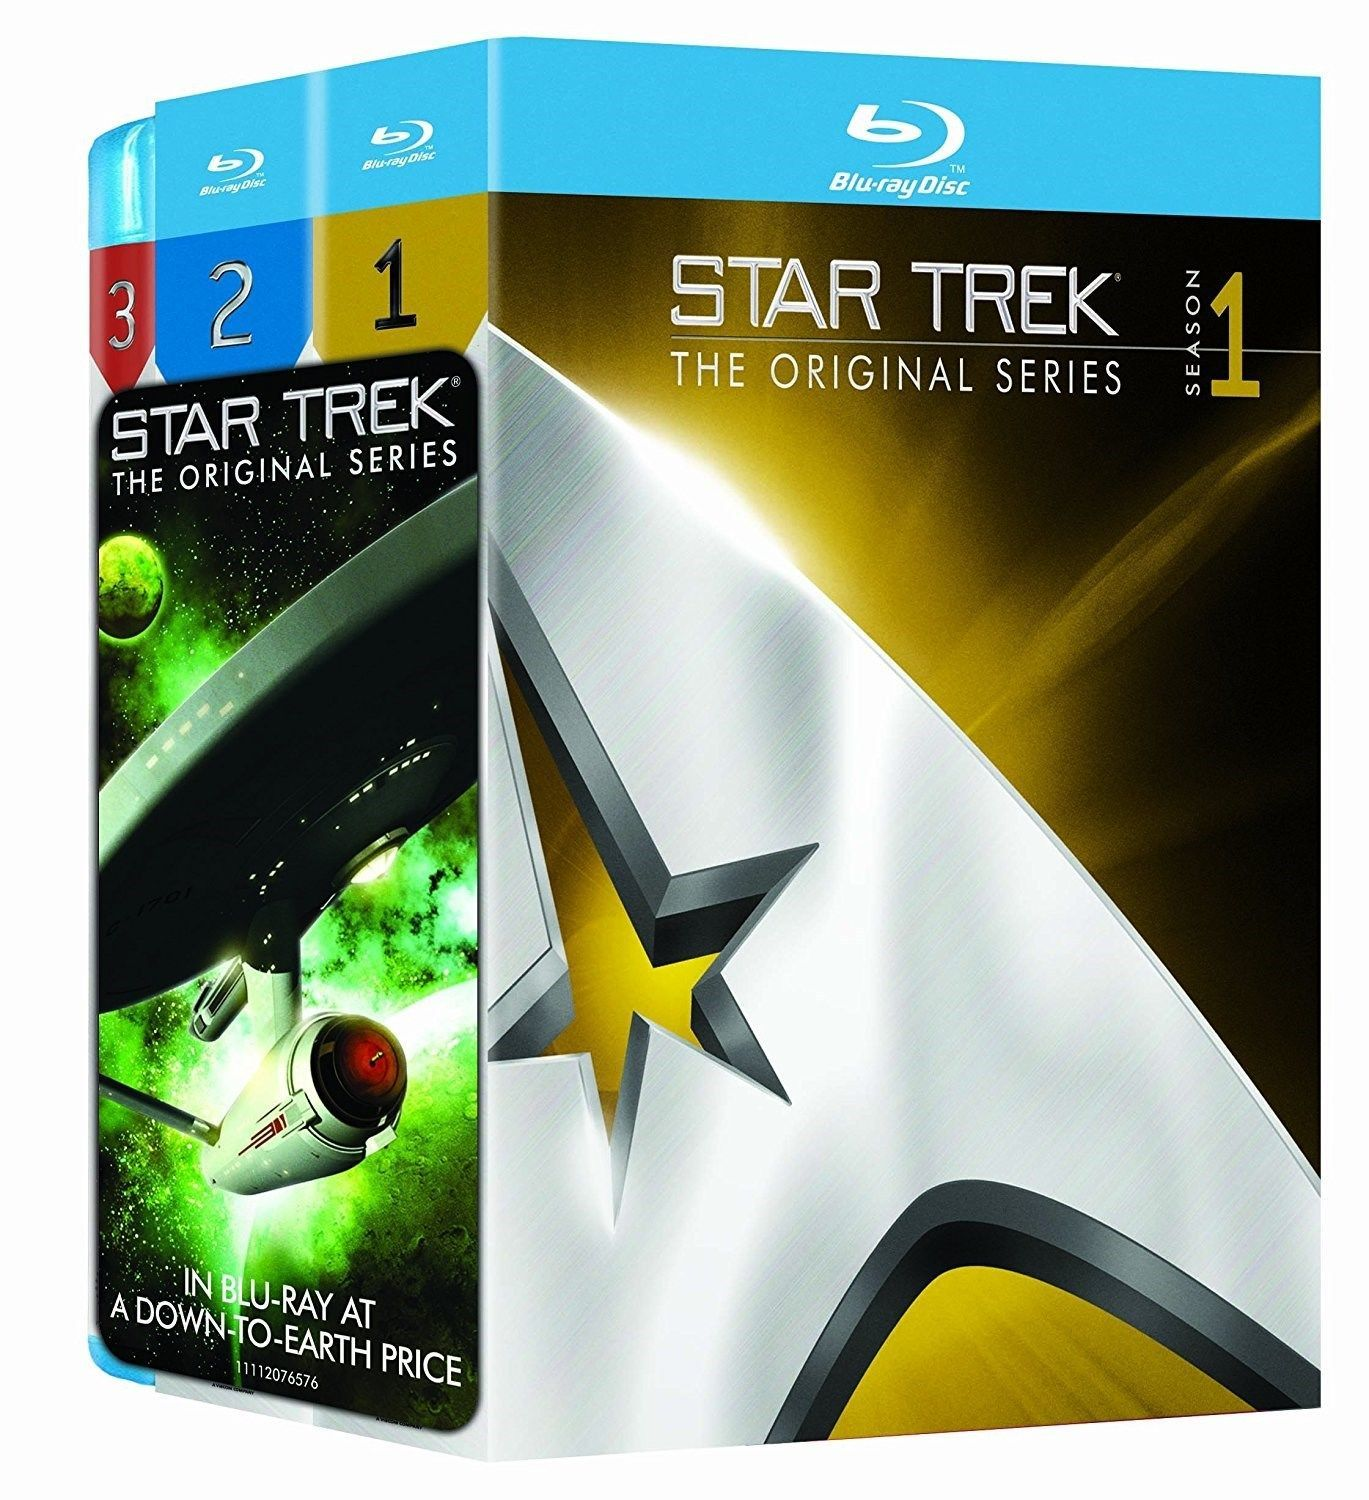 Star Trek - The Original Series: The Complete Series (Blu-ray Disc 2009) https://t.co/iNVevbo5Sc https://t.co/99mzqwdQnt